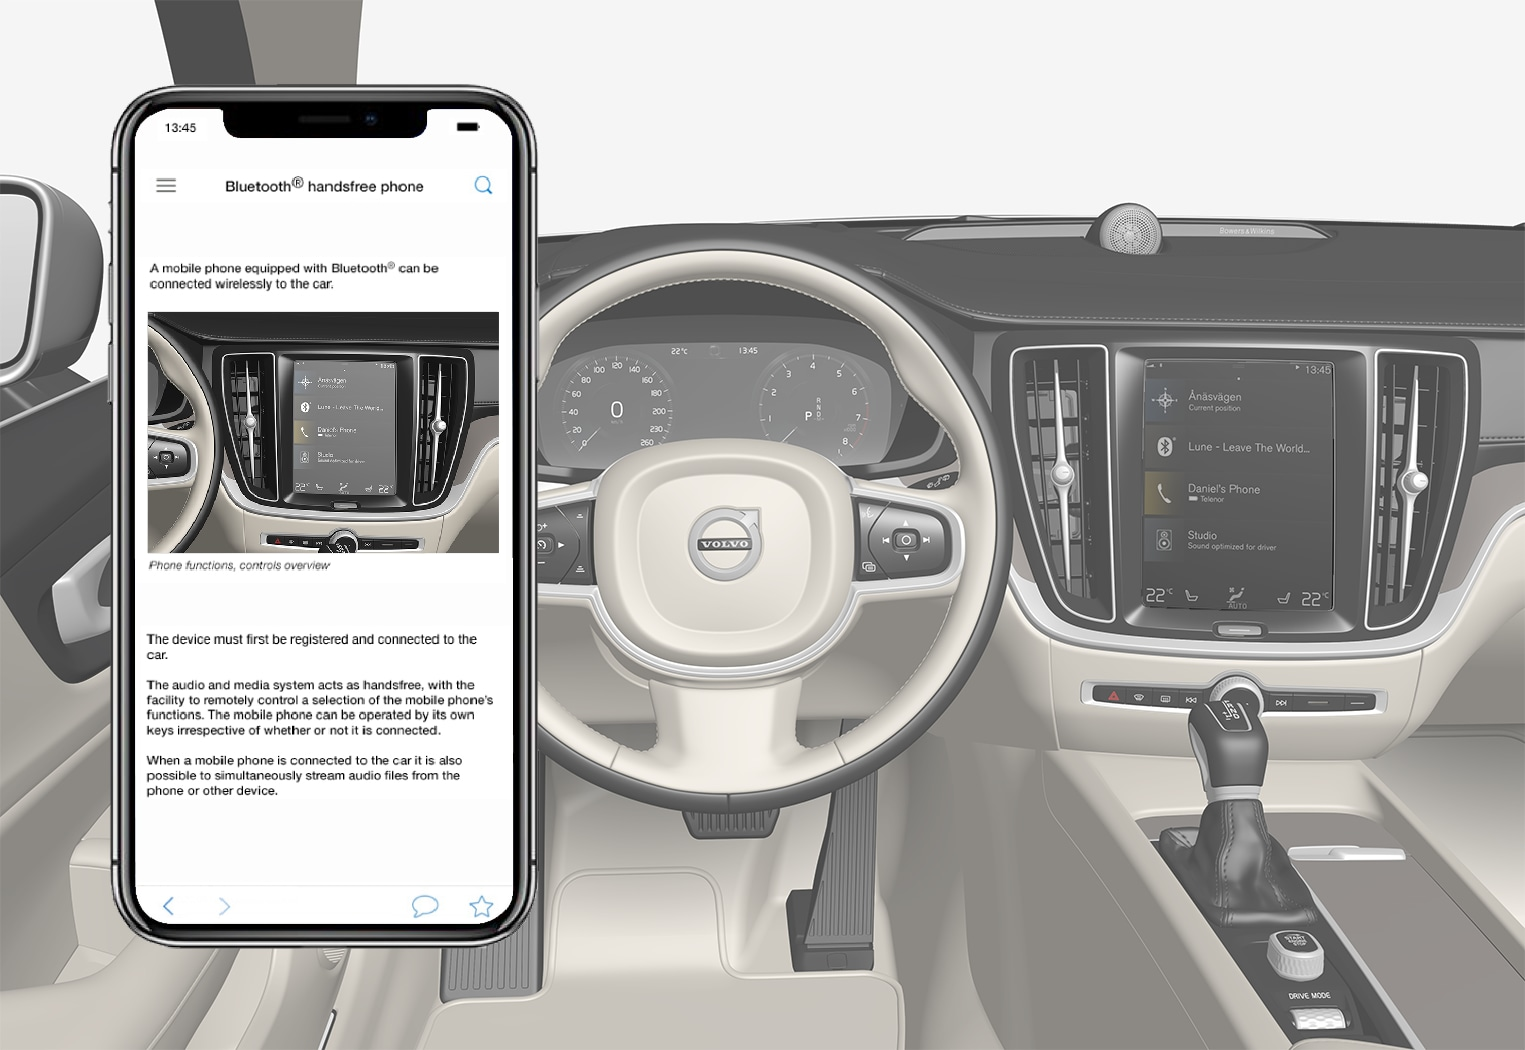 P5-2017-V60/S60-Promote Owner's Manual in mobile devices